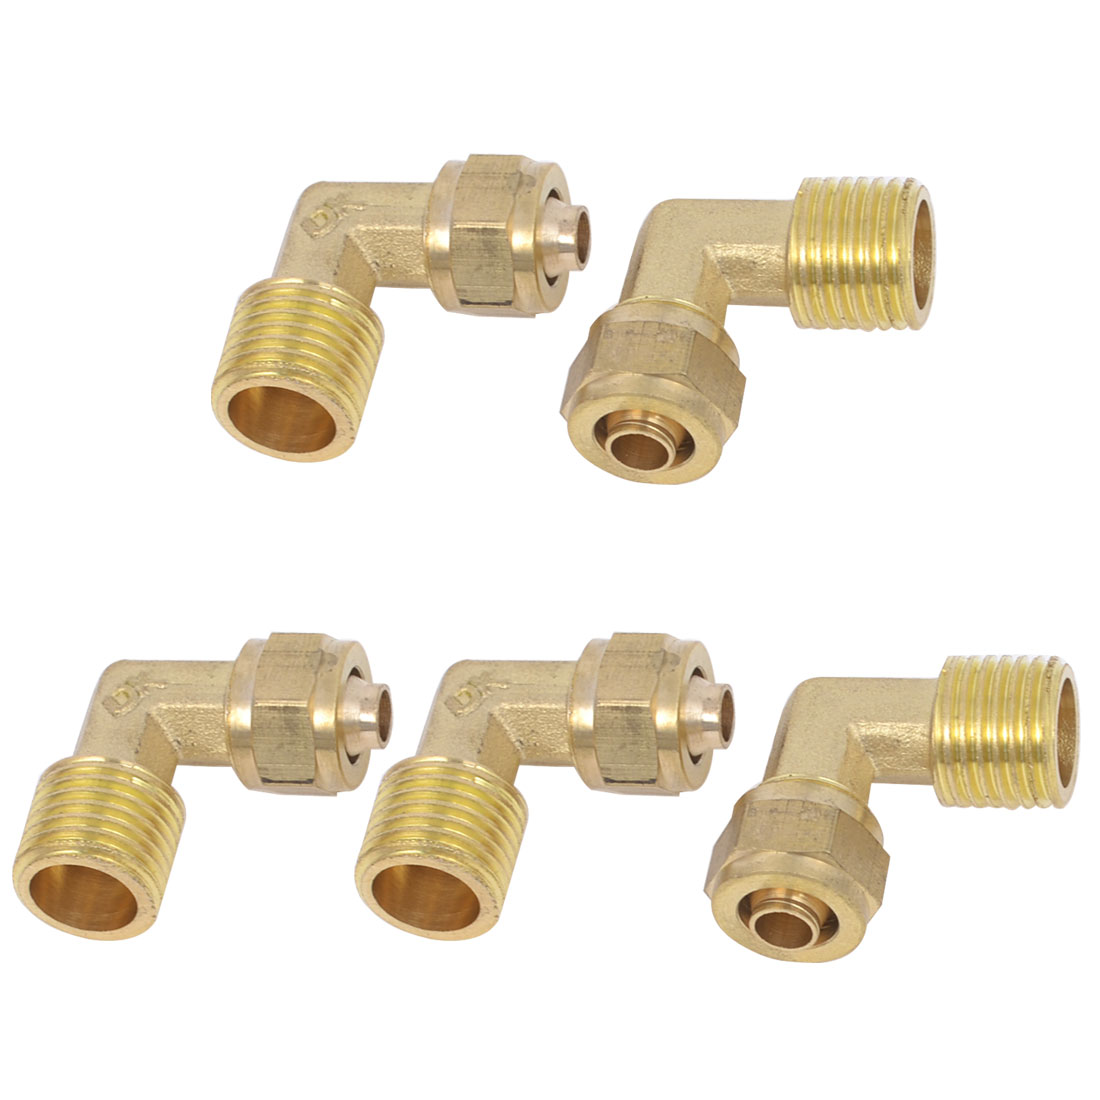 5 Pcs Brass 8mm x 6mm Hose Pneumatic Pipe Hose Brass Quick Coupler Connector